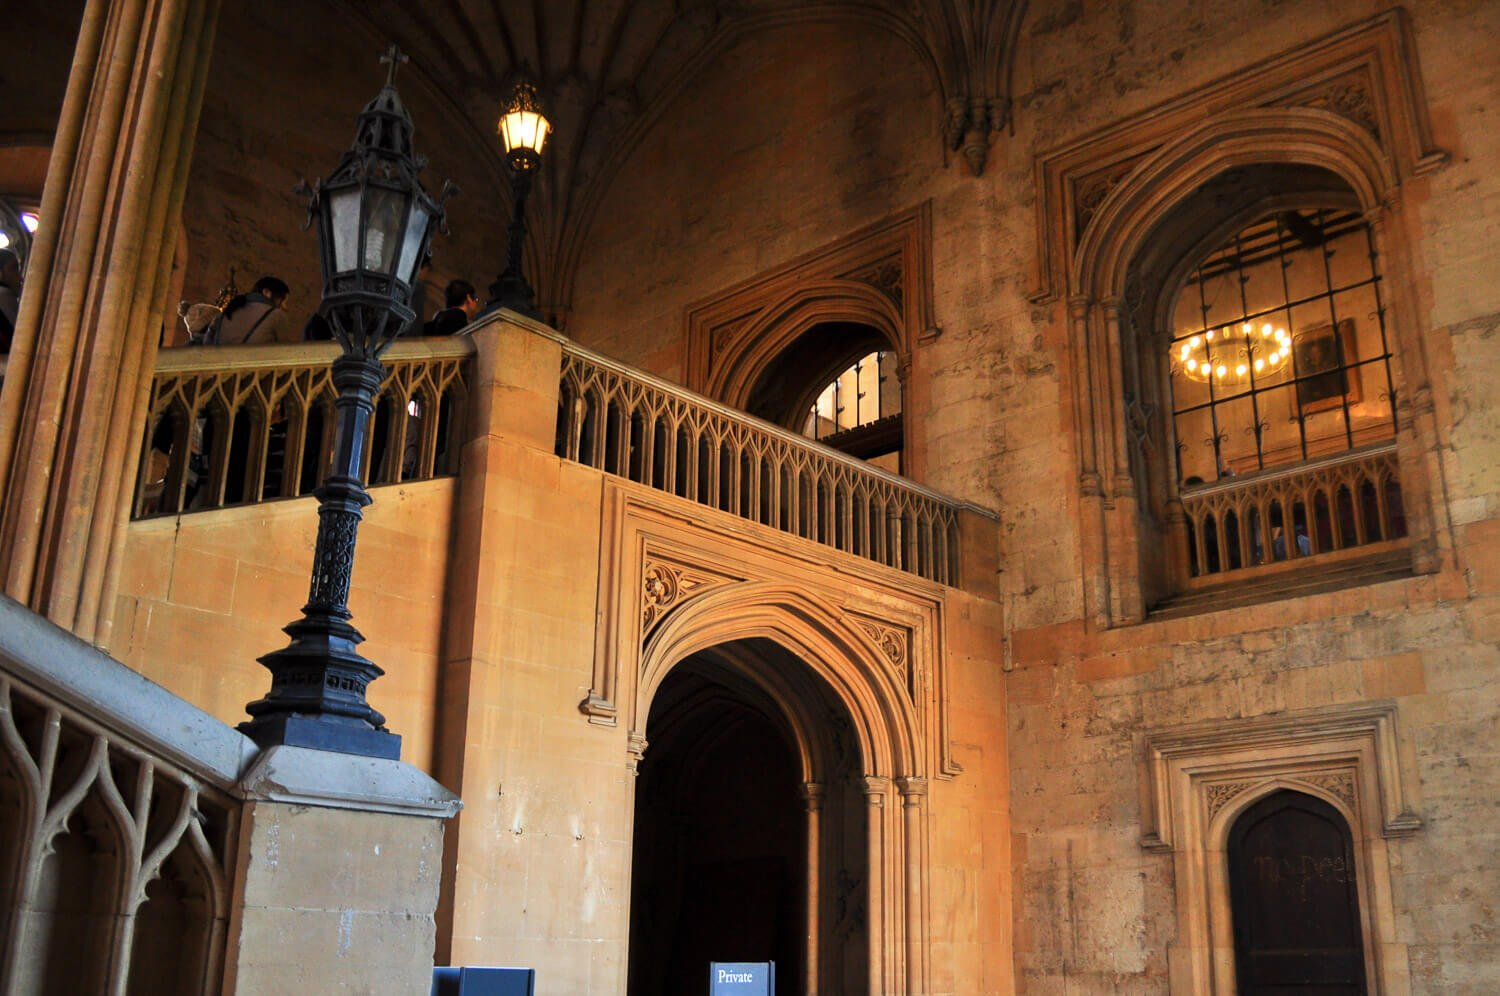 Harry Potter movie locations - Oxford - JRMI